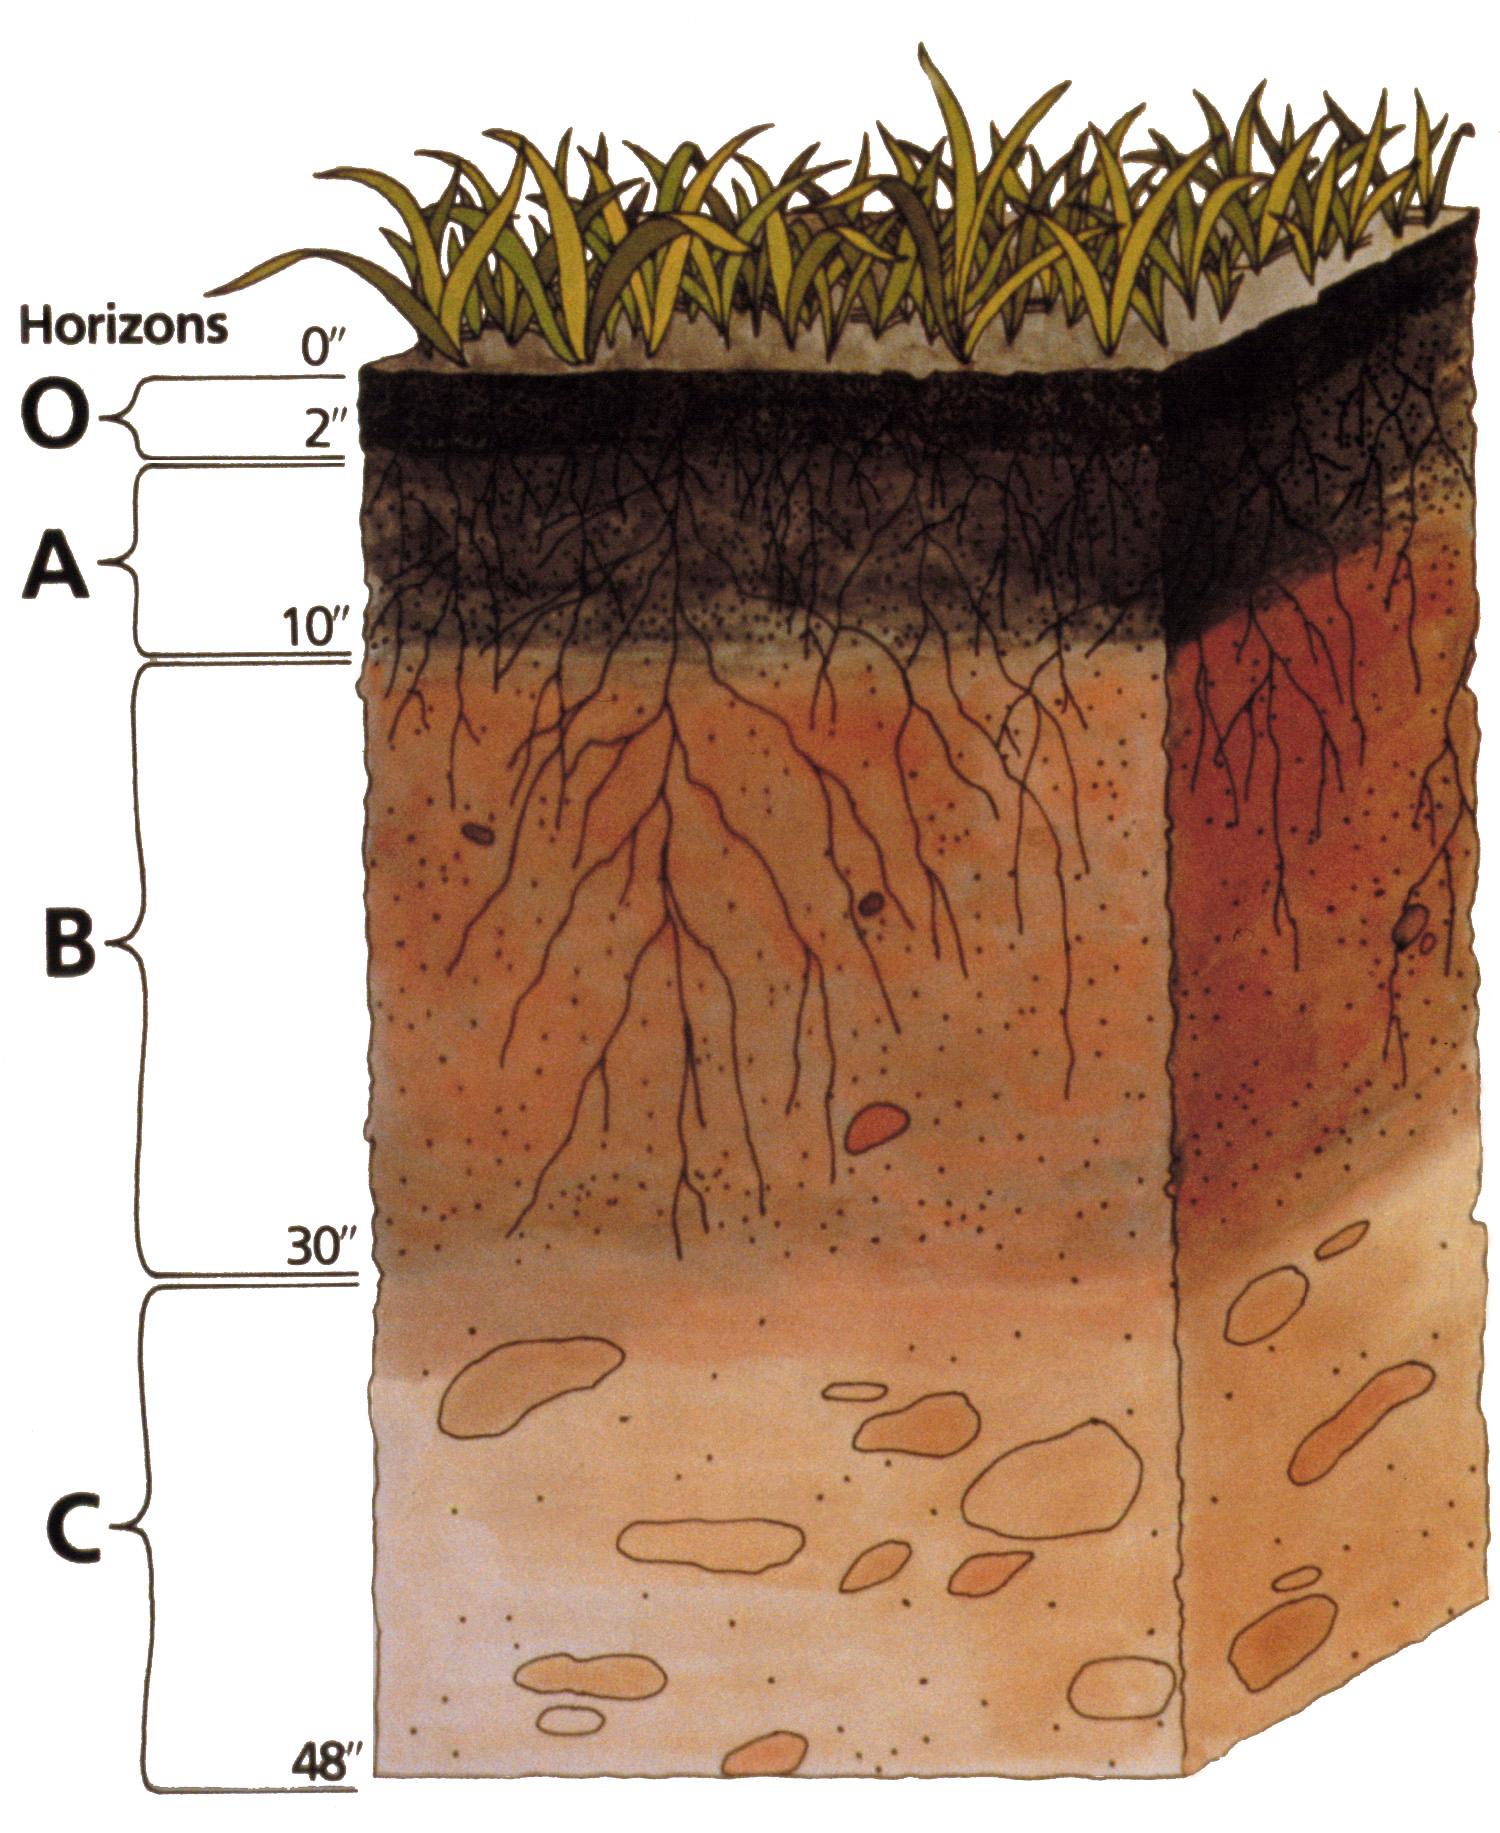 Soil profile 236x288 38.76 KB